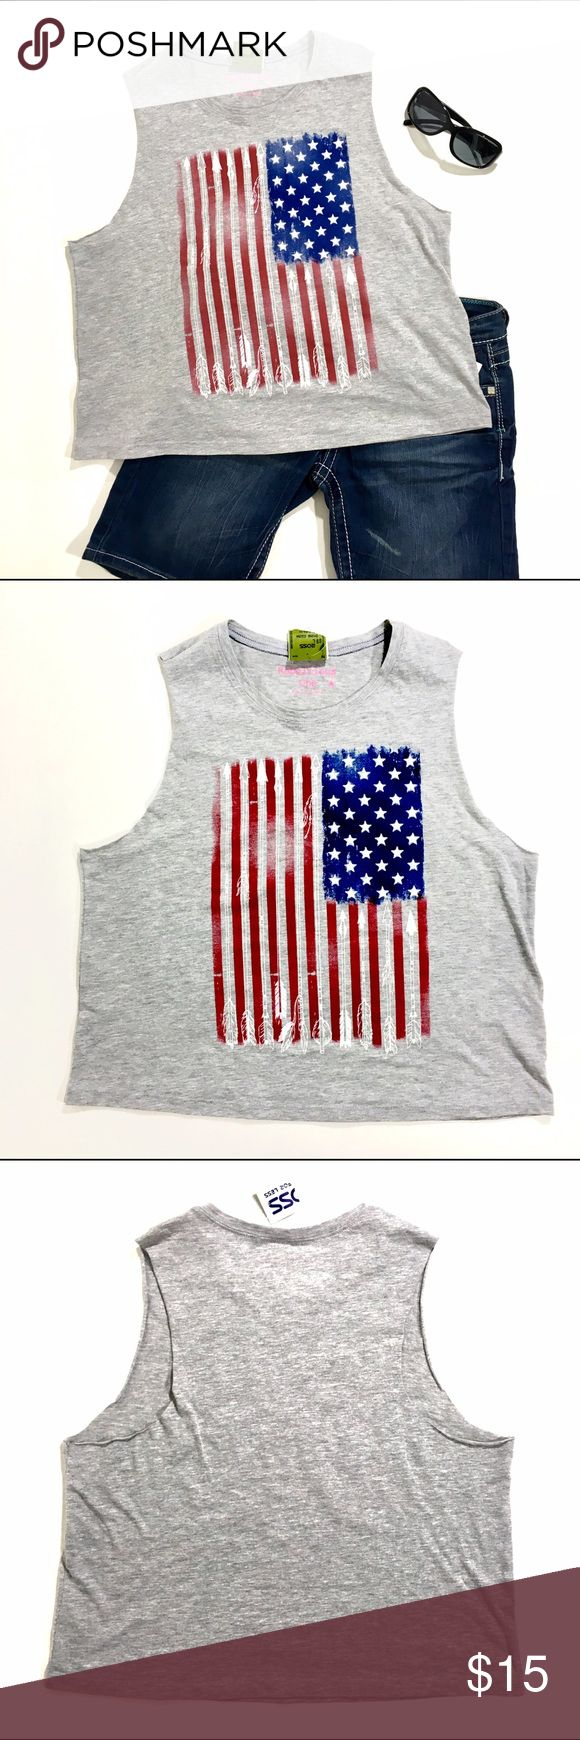 Rebellious One Americana Top Rebellious One Active Crop Tank Hit the gym, run errands or just relax - and look great, too! - in Rebellious One's eye-catching muscle tee/crop tank featuring an American flag with arrows graphic design. Rebellious One Tops Crop Tops